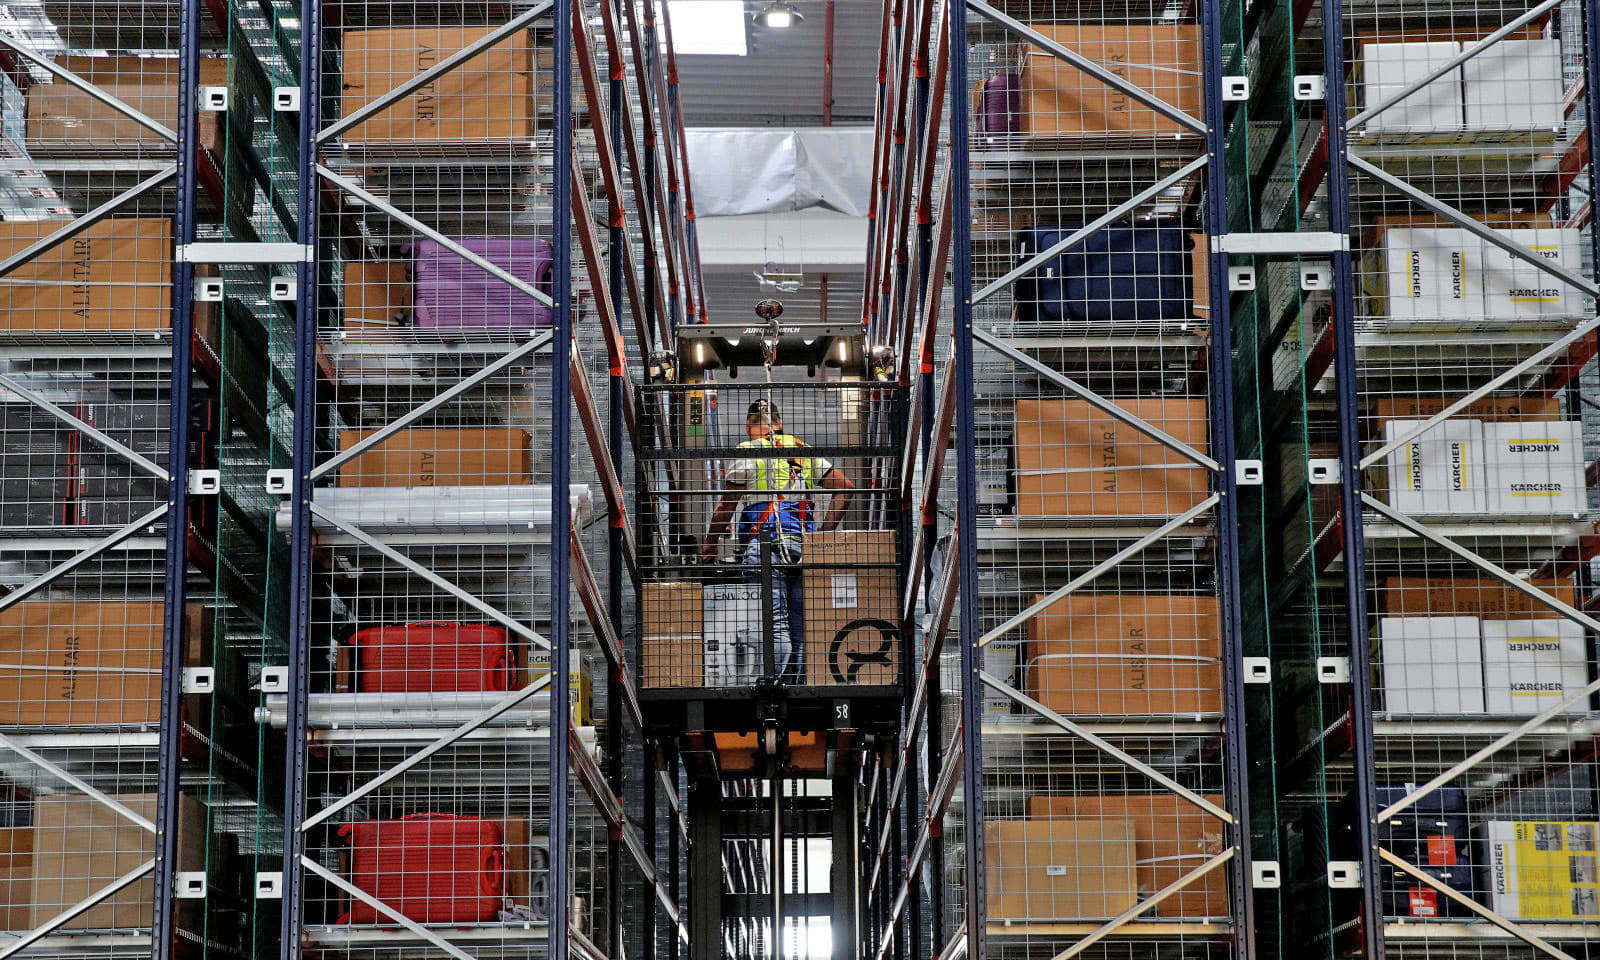 Amazon's warehouse robots won't replace humans for at least